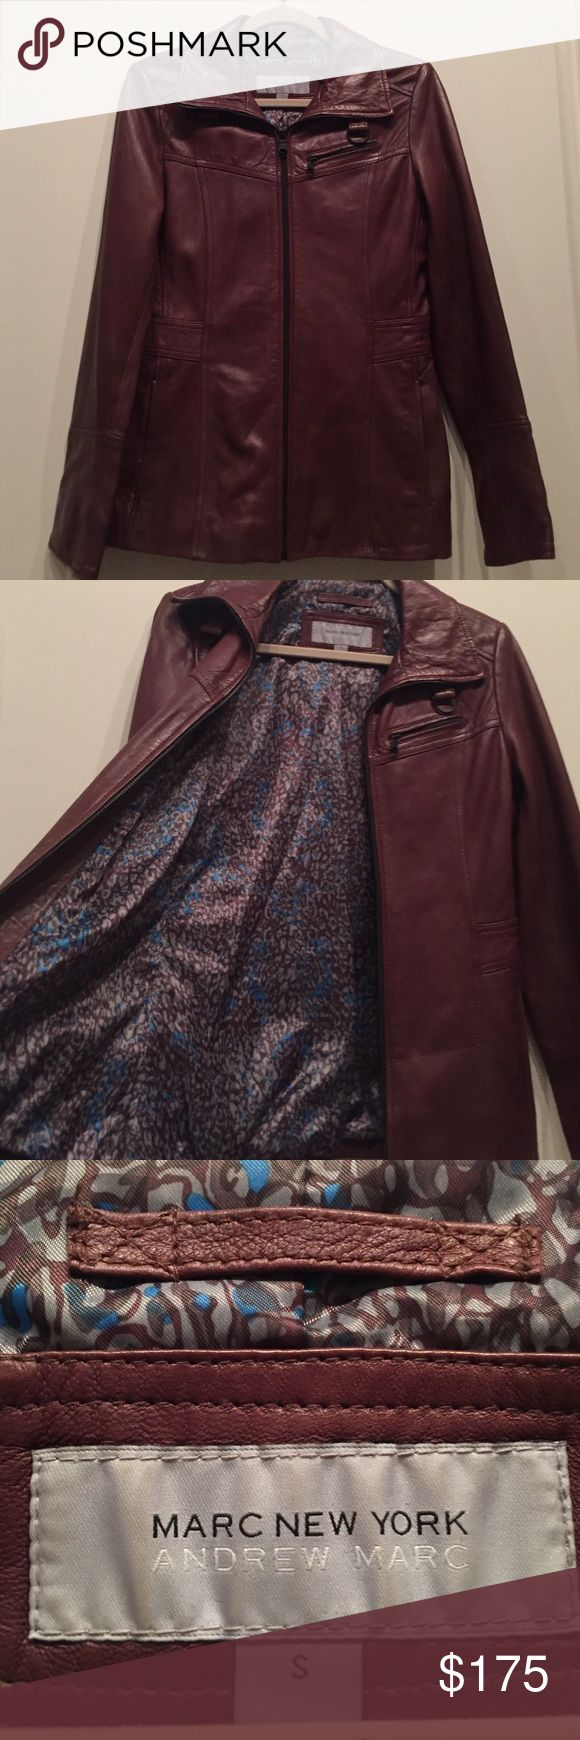 Andrew Marc- Marc New York Brown Leather Jacket Andrew Marc- Marc New York Genuine Brown Leather Women's Jacket.. super soft leather and only worn once! Andrew Marc Jackets & Coats